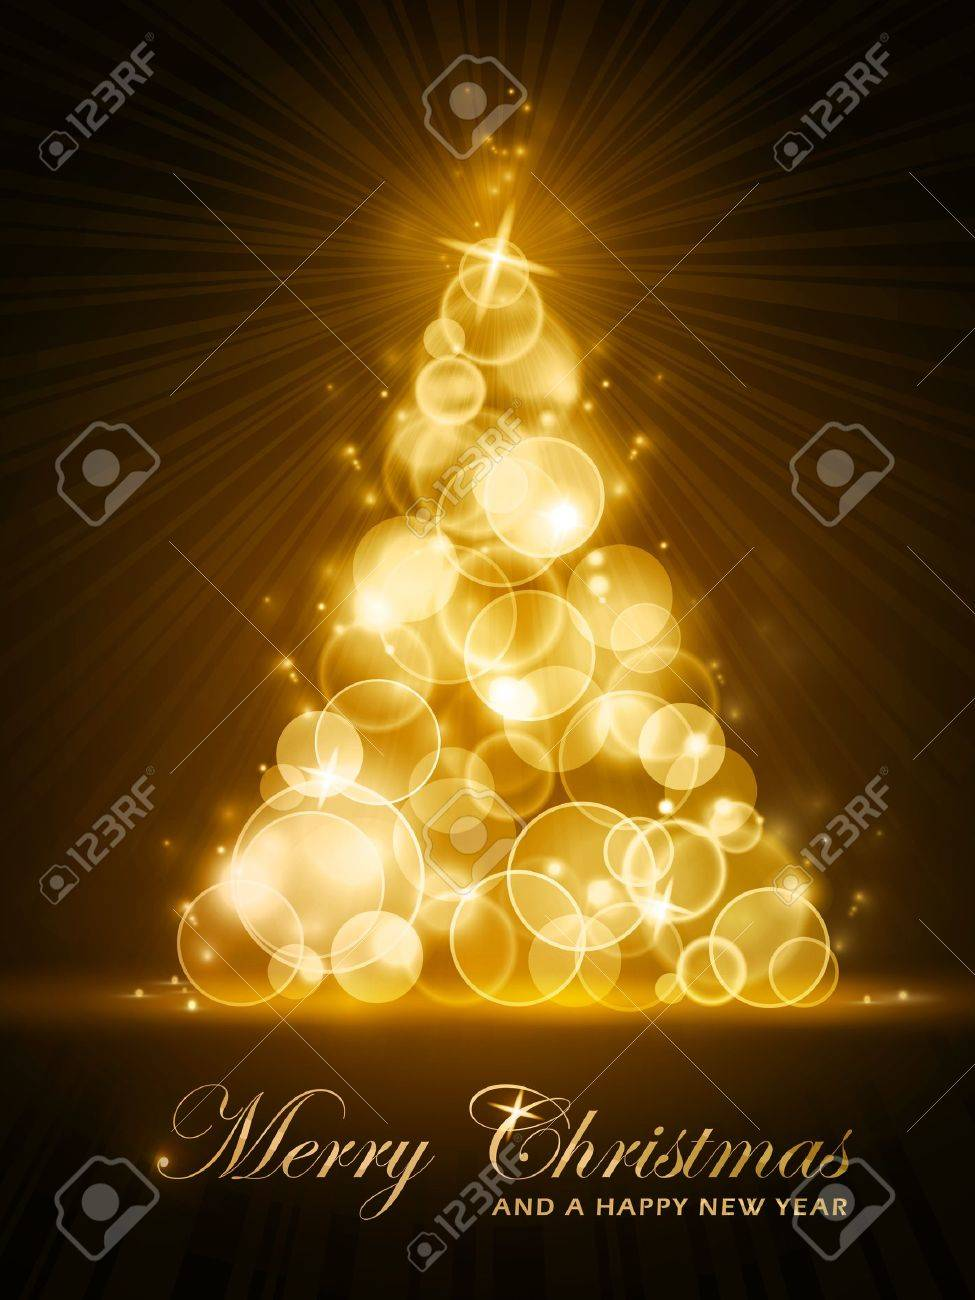 vertical christmas card with stylized golden glowing christmas